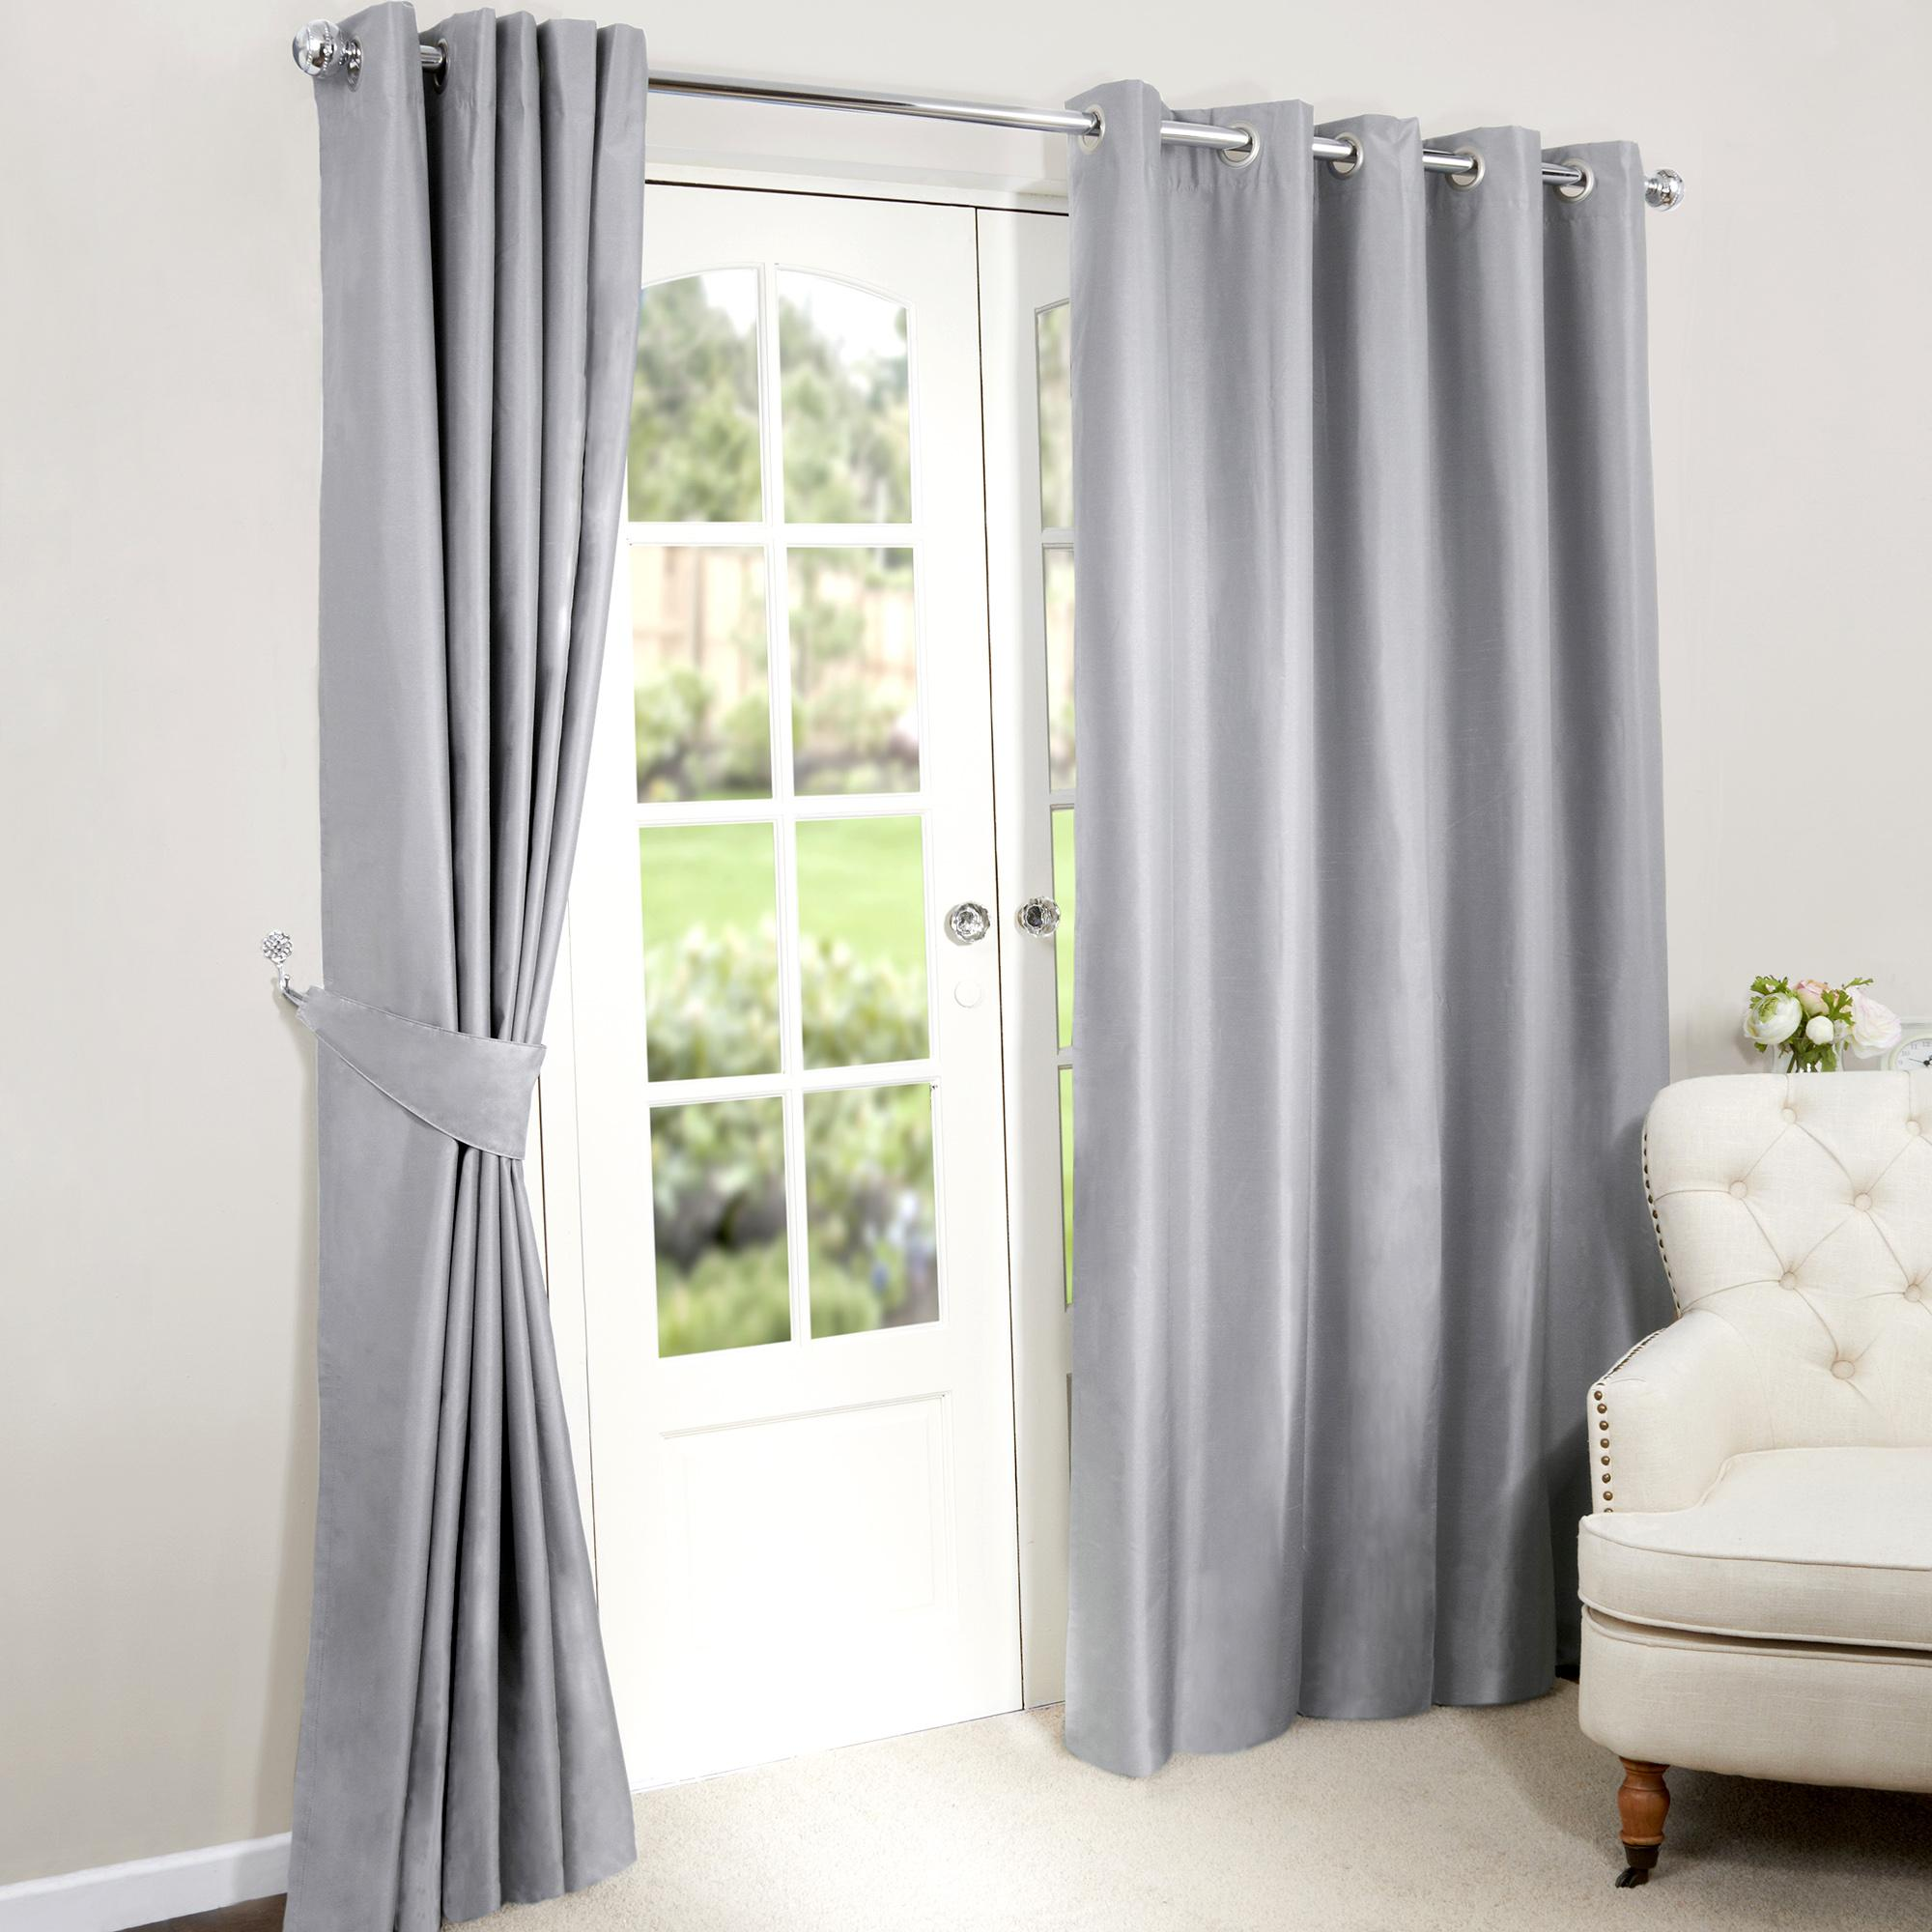 silver curtains nova silver blackout eyelet curtains TNFOGXI